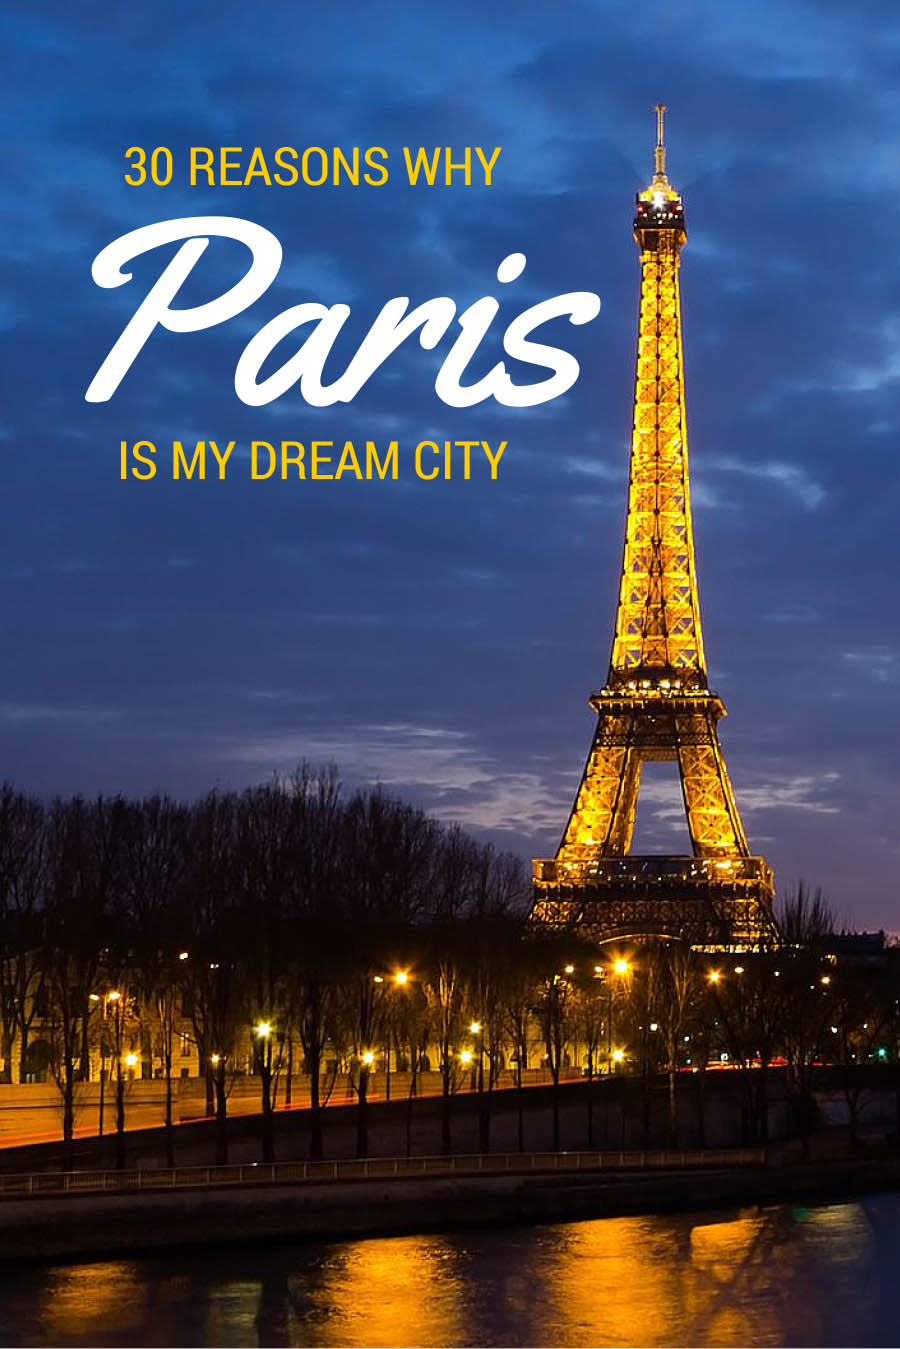 30 Reasons Why PARIS is my DREAM City